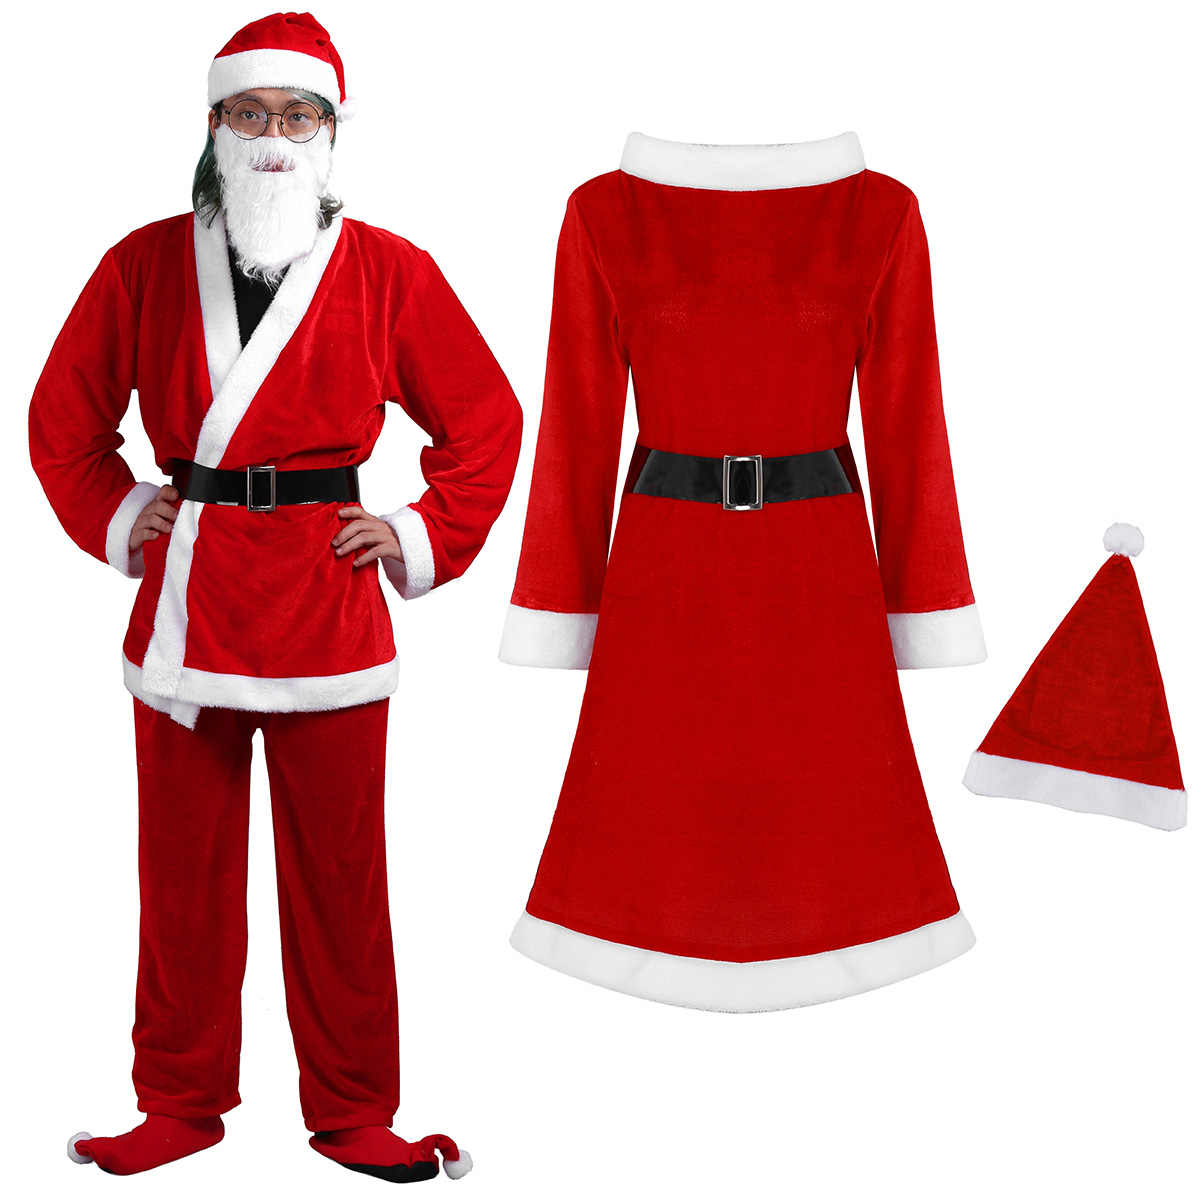 222ad748113 Detail Feedback Questions about DPOIS Christmas Santa Claus Costume ...